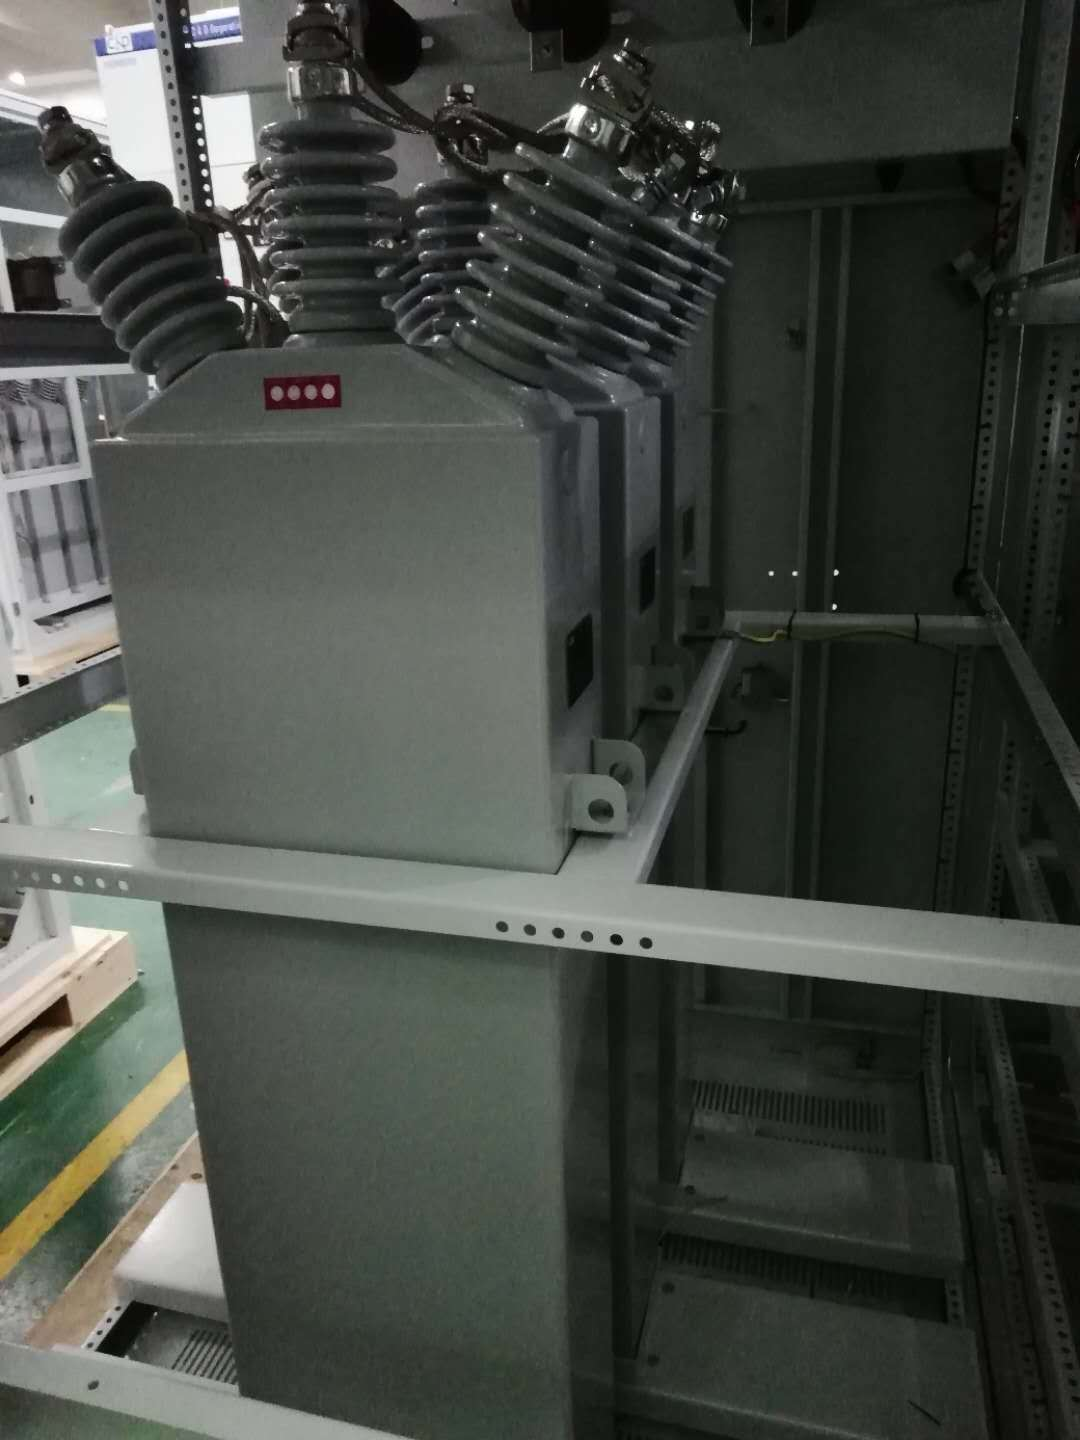 China 600kvar Abb High Voltage Shunt Filtering Capacitor With Fuse Mediumvoltage Switchgear Switching Of Capacitors And Filter Circuits Built In Three Phase